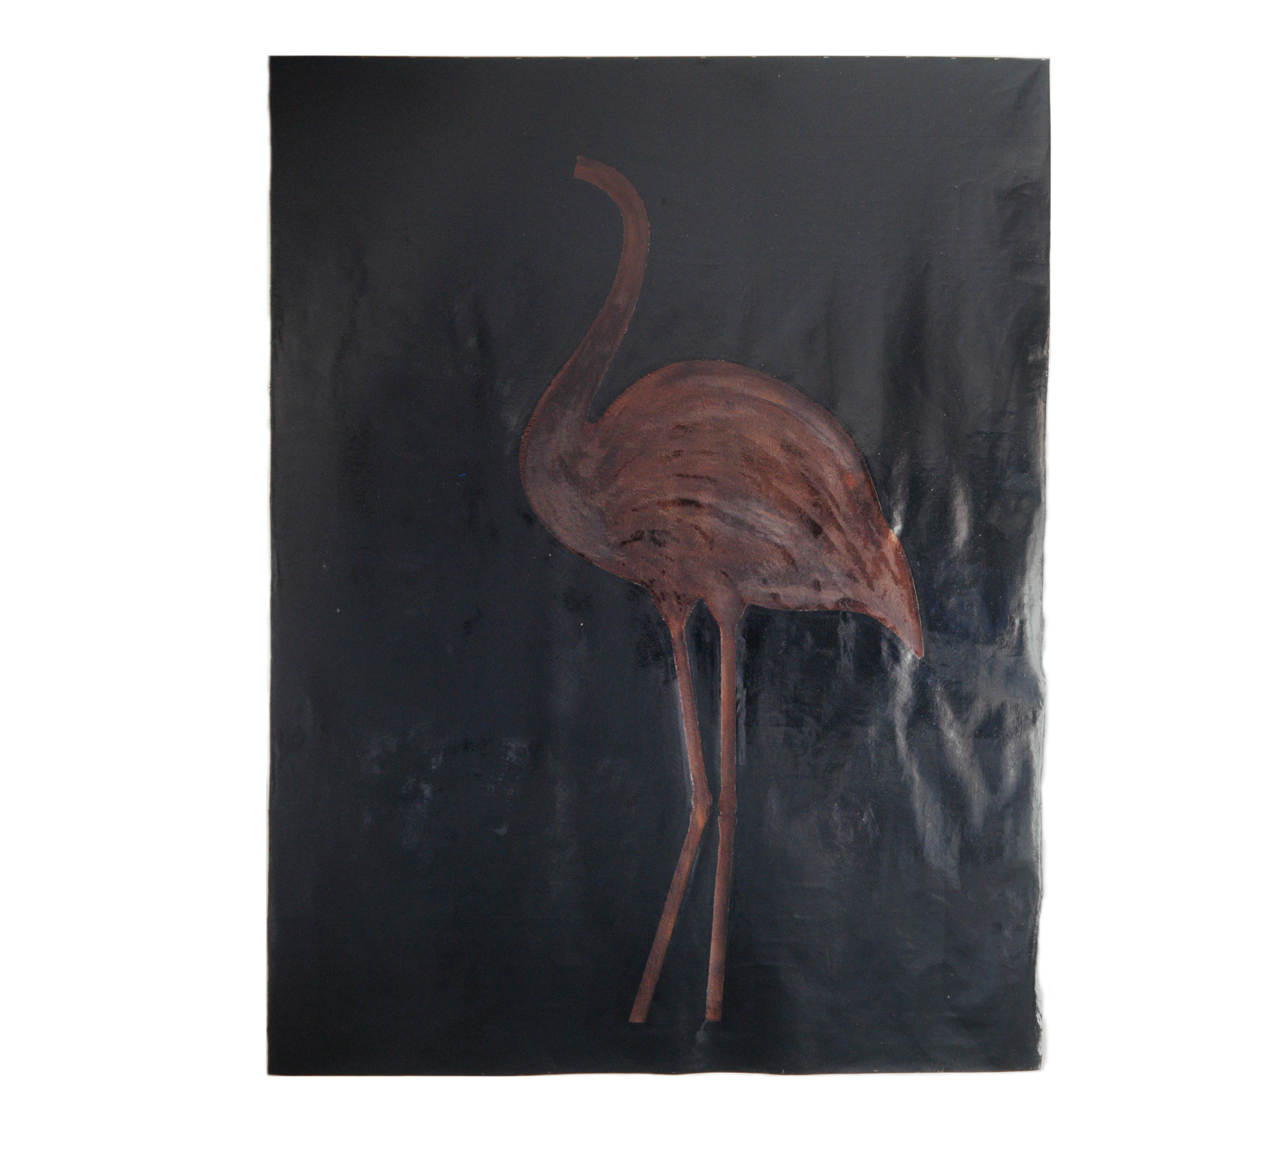 """Picture of a Flamingo"" 1981, tar, bronze paint on canvas, 275 x 210 cm - Cammlung Don & Nancy Eiler, Madison, Wisconsin - Photo Stephan Hadler"